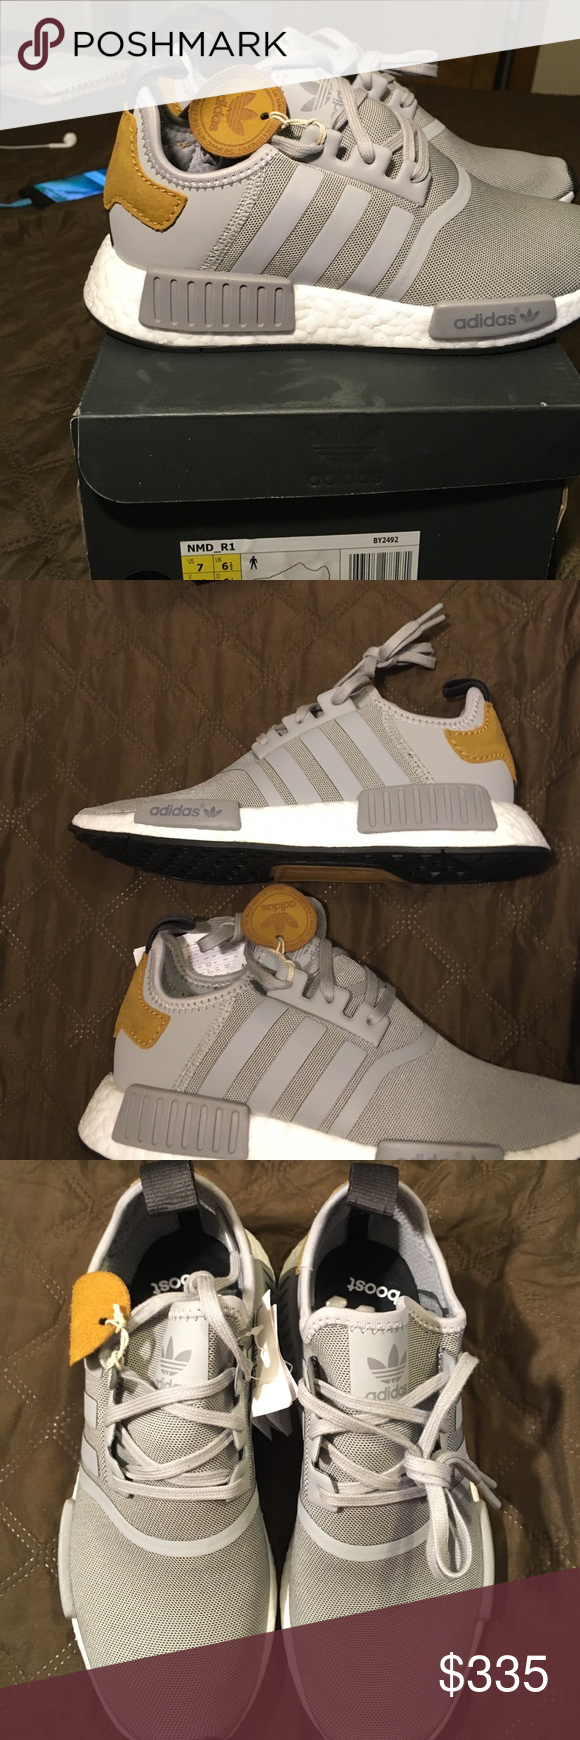 Adidas NMD MasterCraft Women's Sz 8 or Men's 7 Ignore listing price and msg for better prices.     Brand new authentic pair of a hard to find/rare Adidas NMD colourway.  If you like the shoe but it's not your size please msg me and I can find it. Adidas Shoes Sneakers